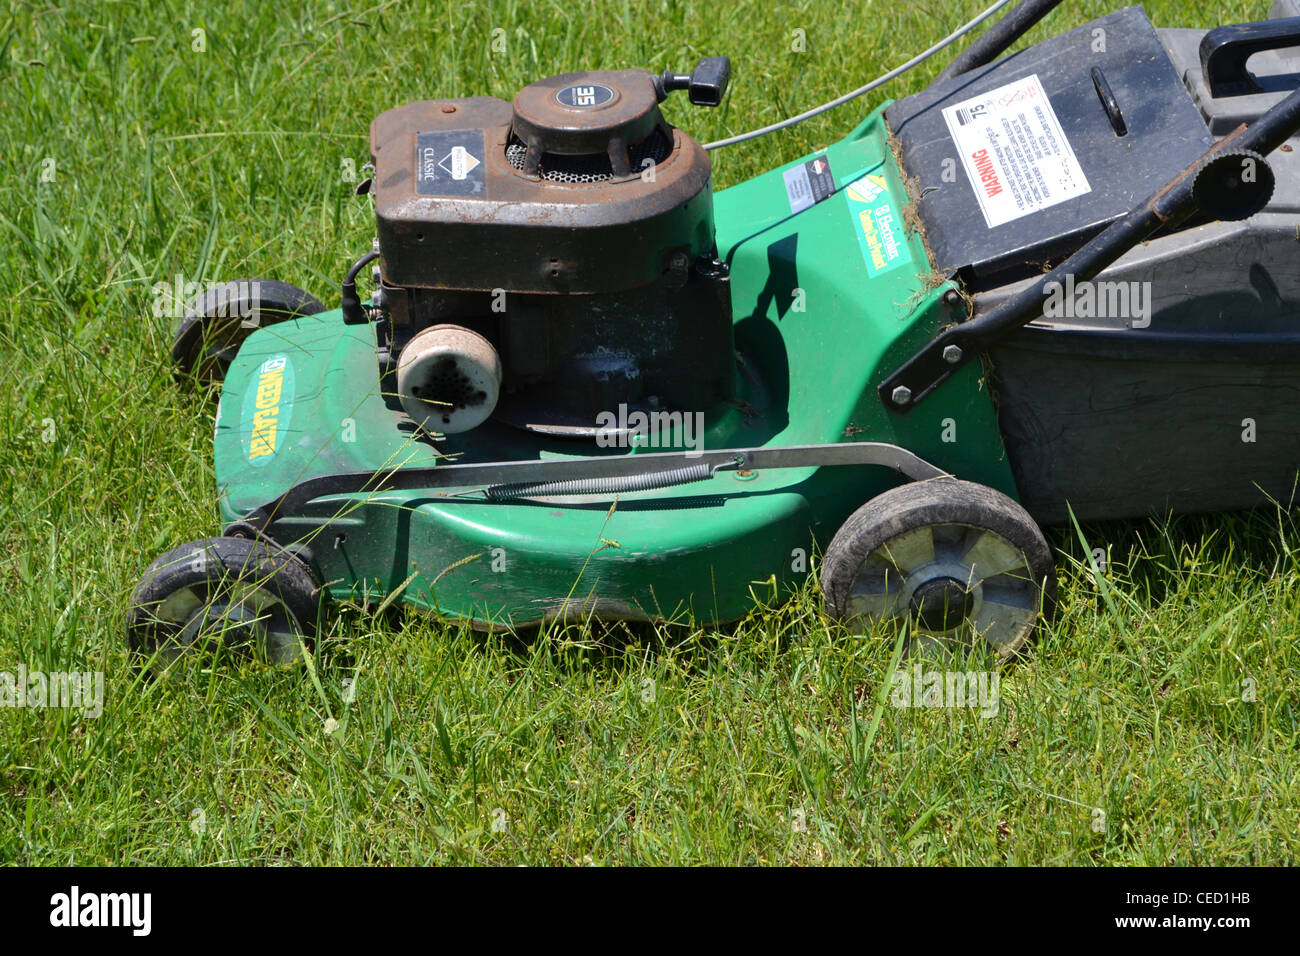 petrol mower stockfotos petrol mower bilder alamy. Black Bedroom Furniture Sets. Home Design Ideas